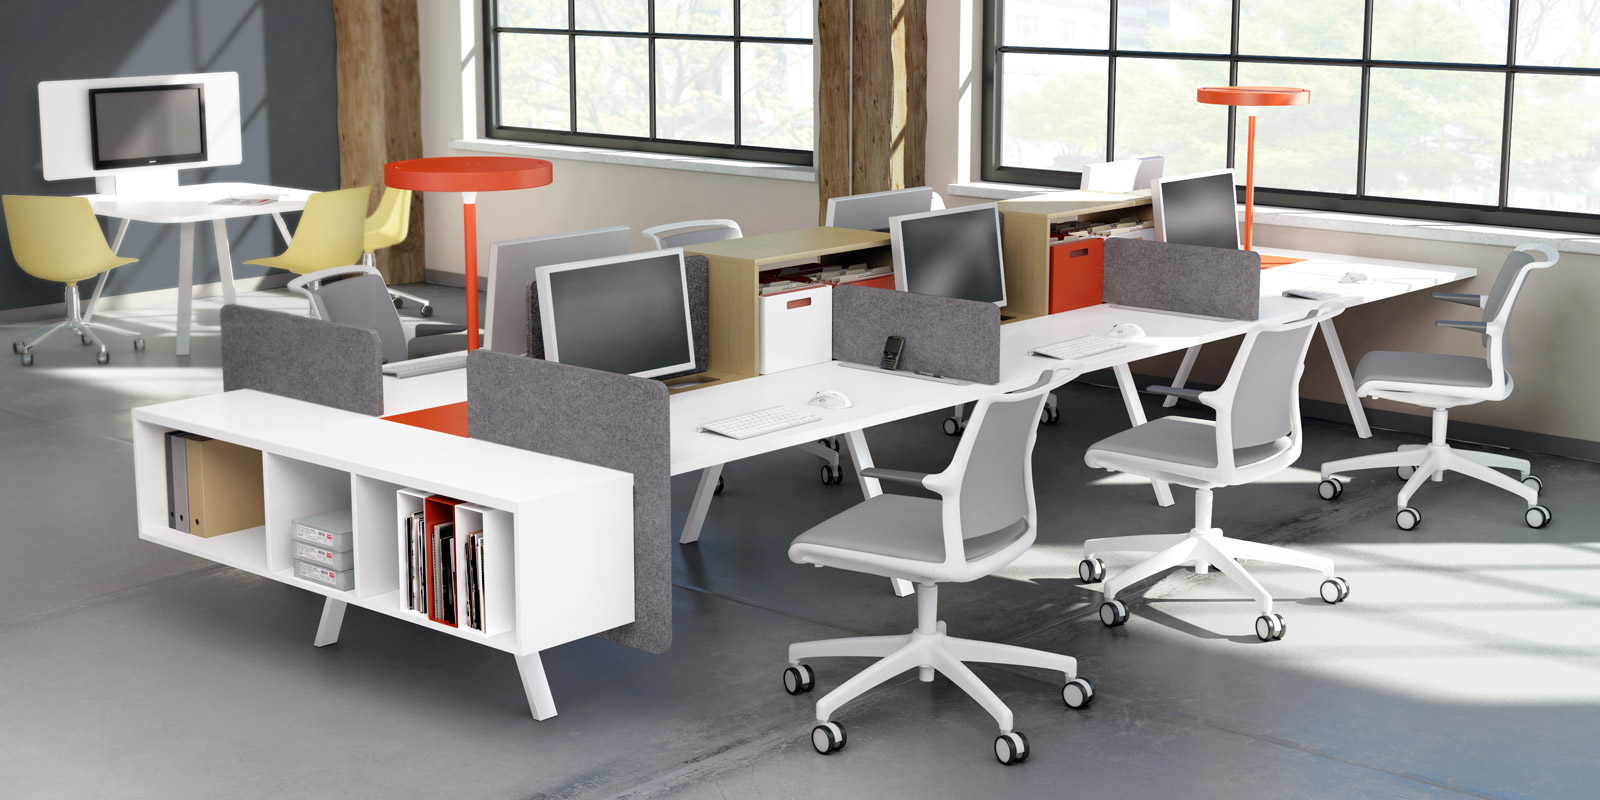 Watson Tonic Workstations & WoW | Office and Home Furniture | Enhance Your Work Space and Living ...